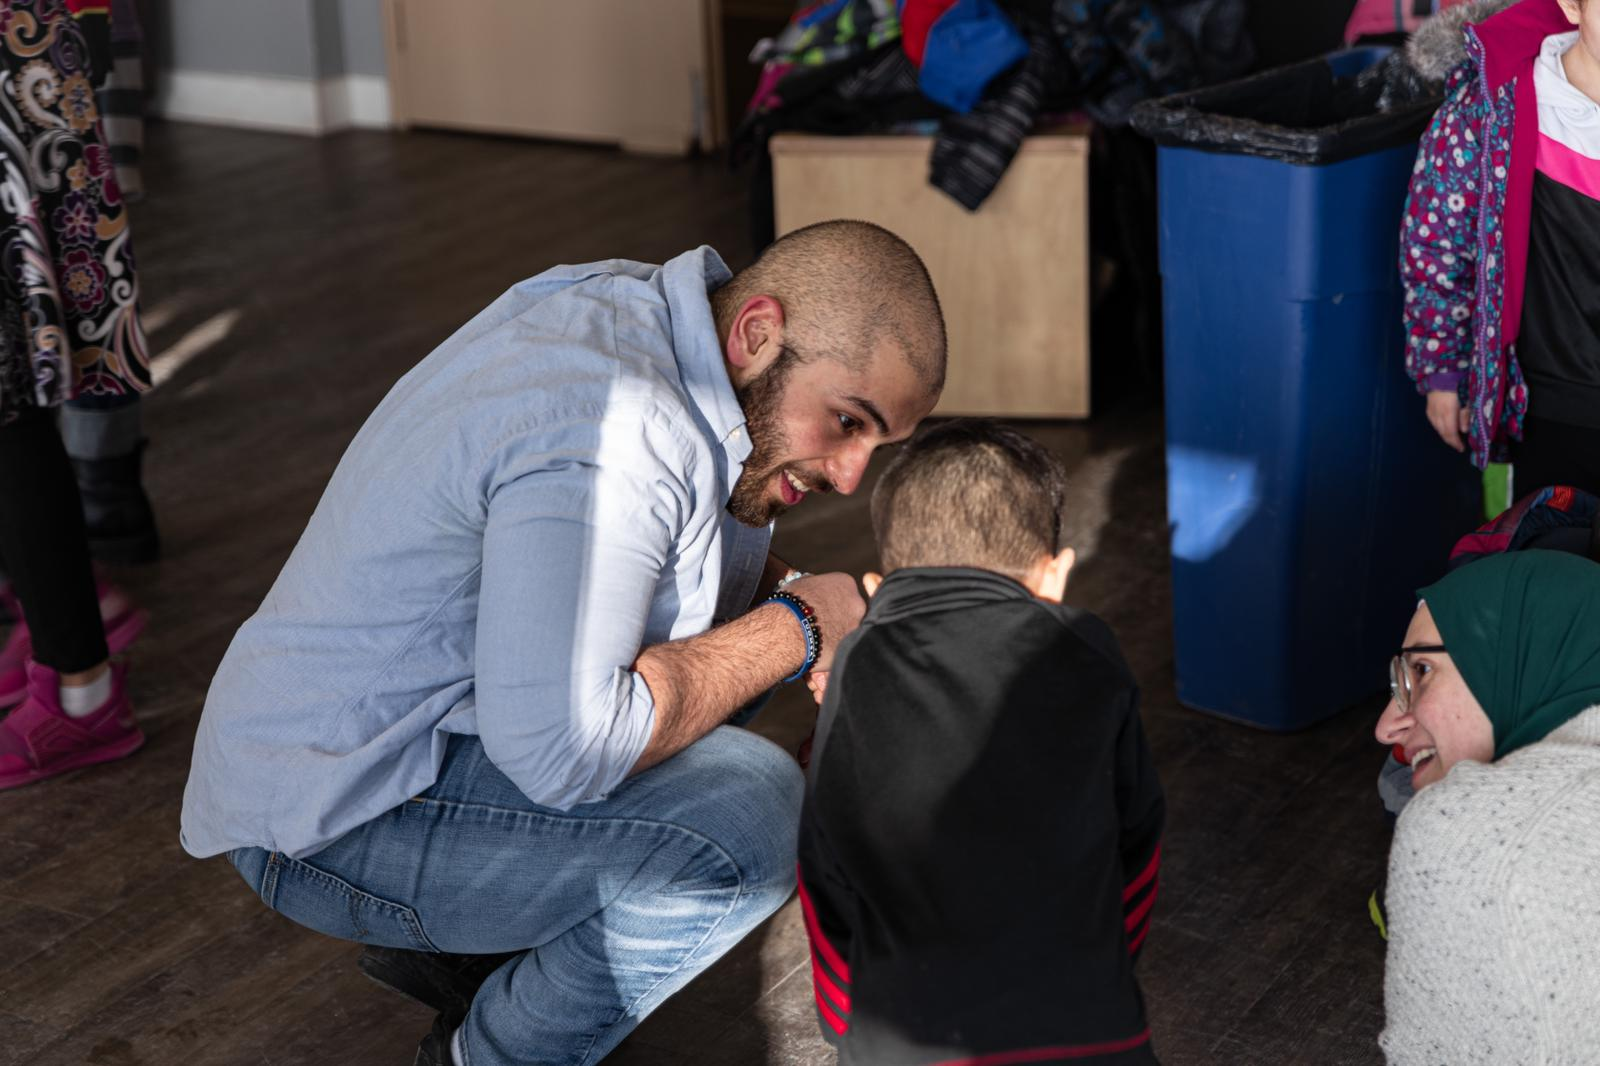 A mentor crouches down to talk to a child